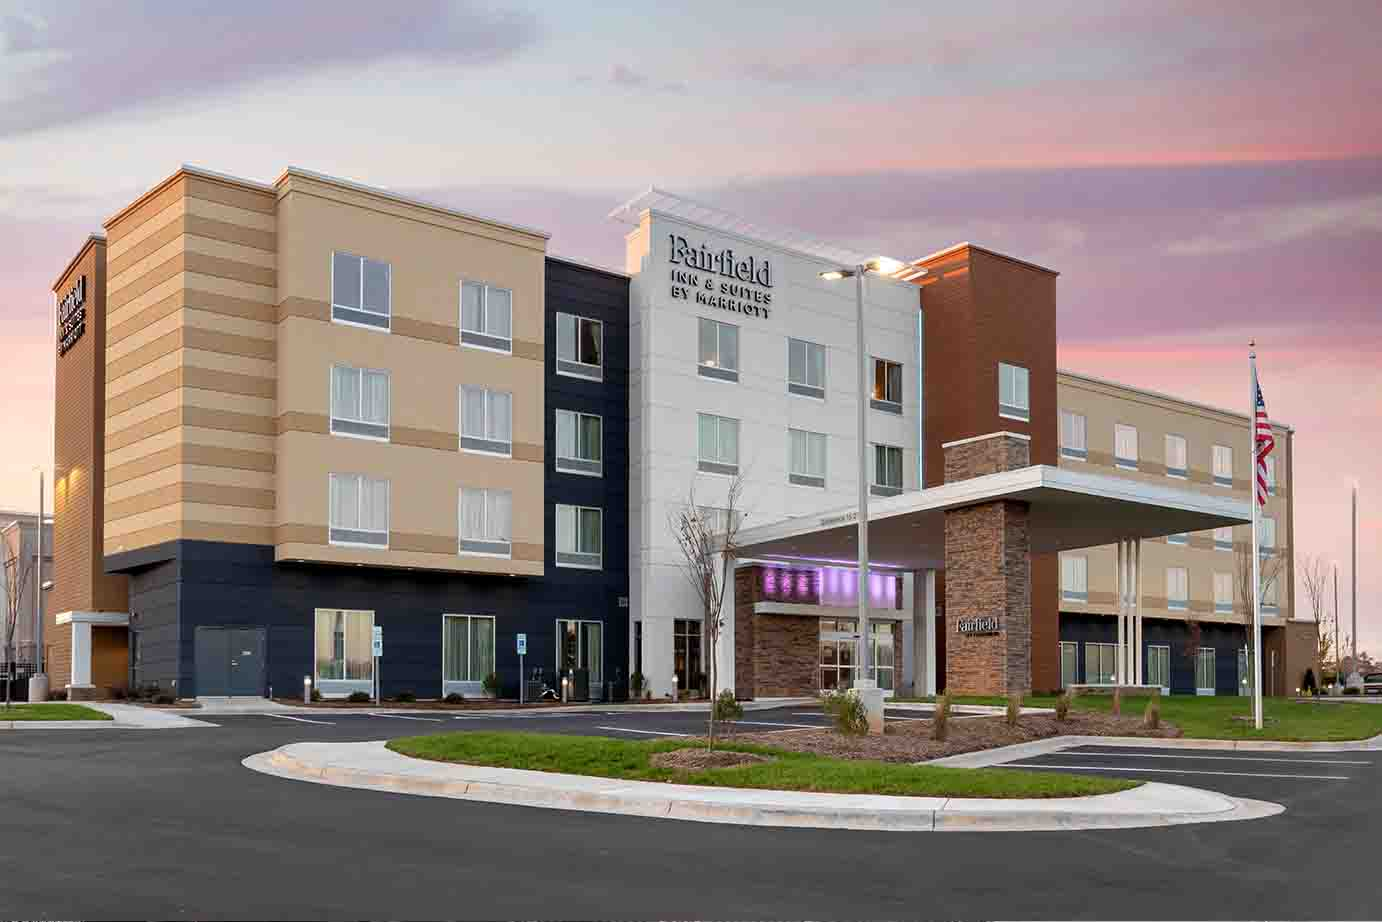 Exterior View of a Fairfield Inn & Suites Hotel at Sunset